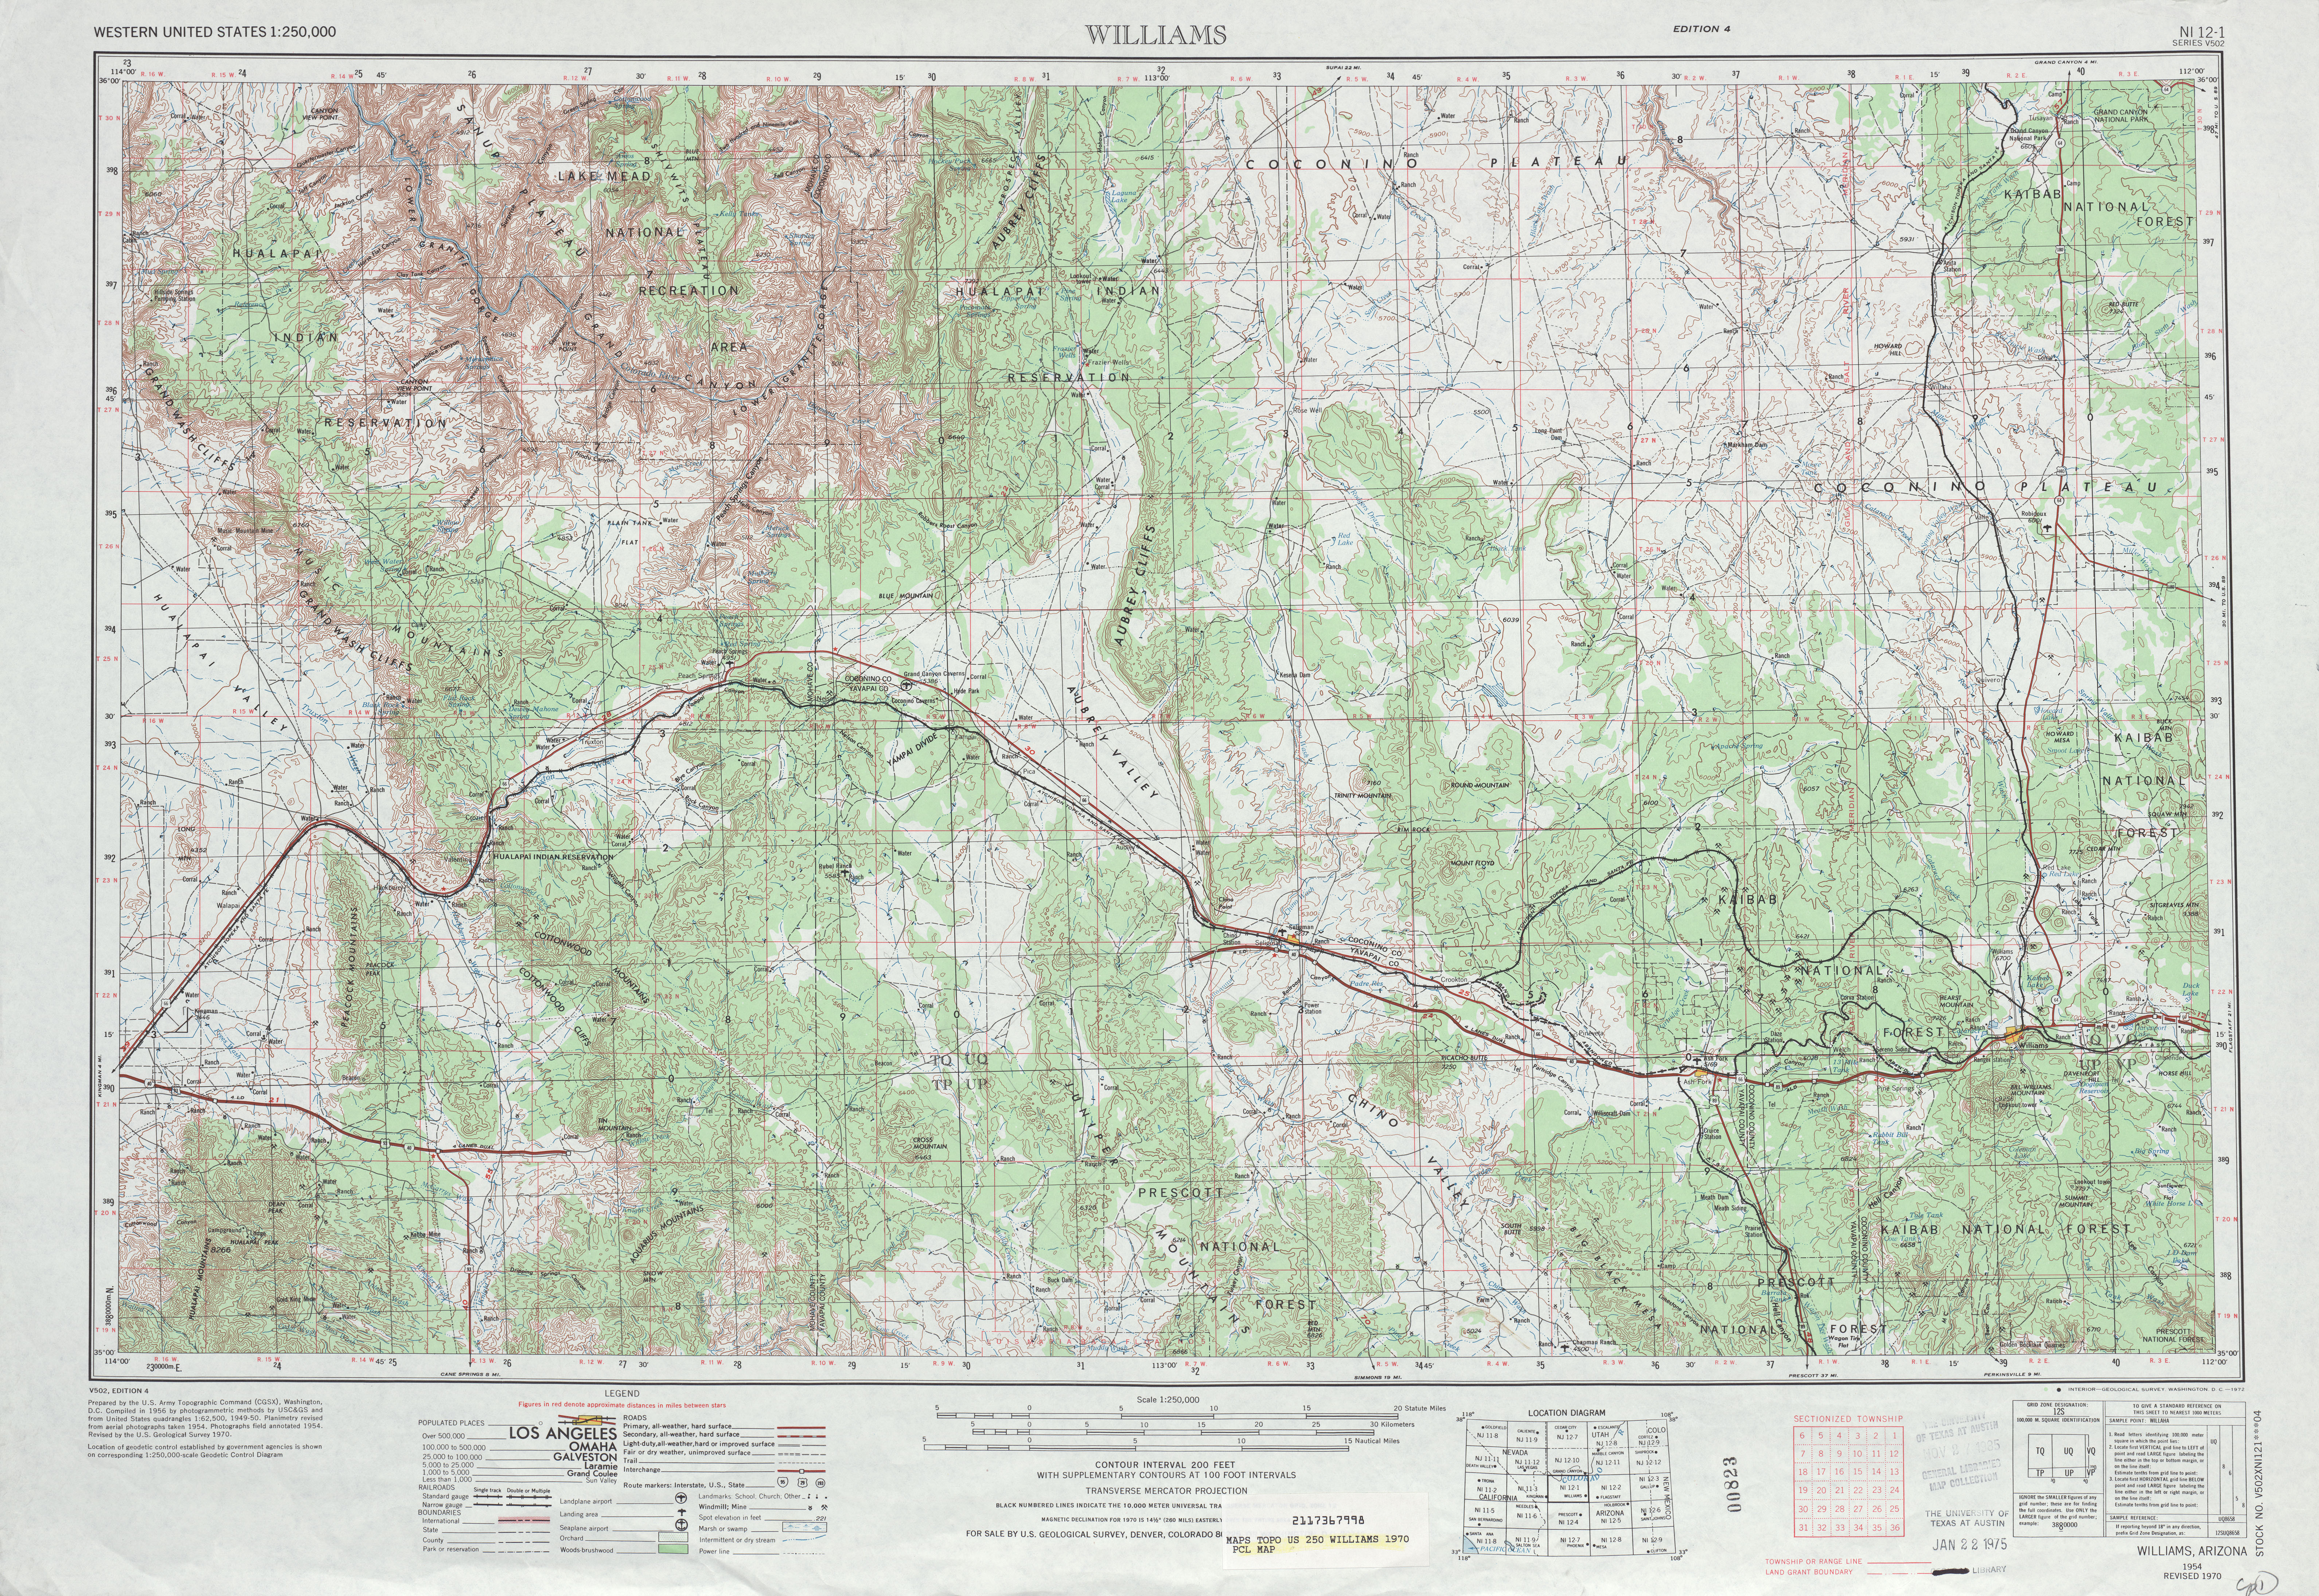 Williams Topographic Map Sheet, United States 1970